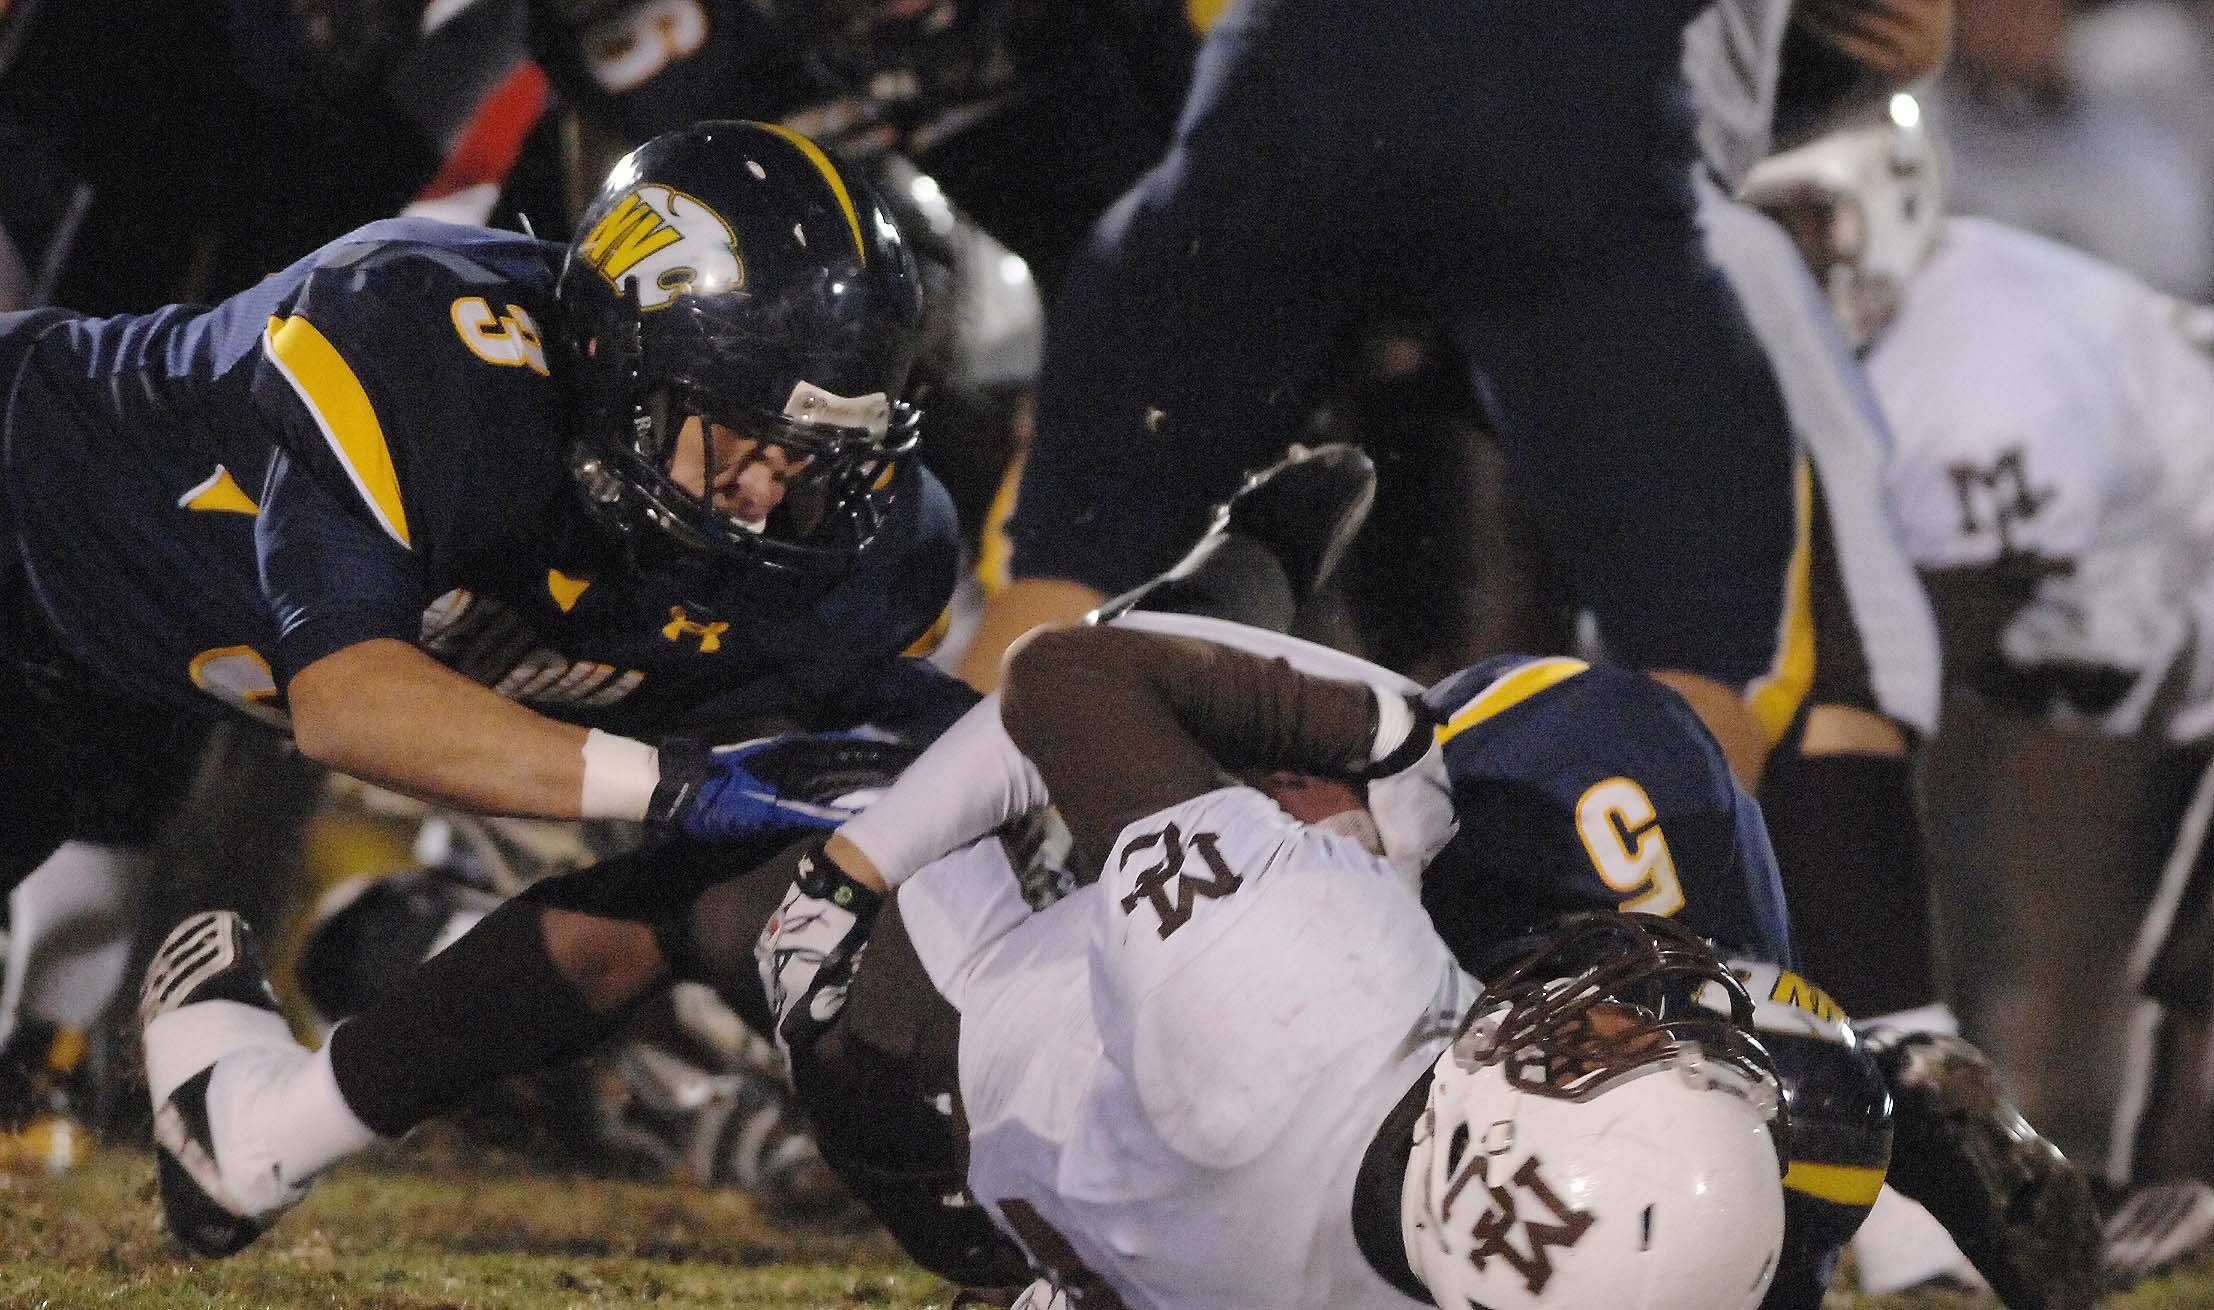 Dillon Strack ,left, and TJ Rhattigan of Neuqua Valley bring down Michael Banks of Mt. Carmel .